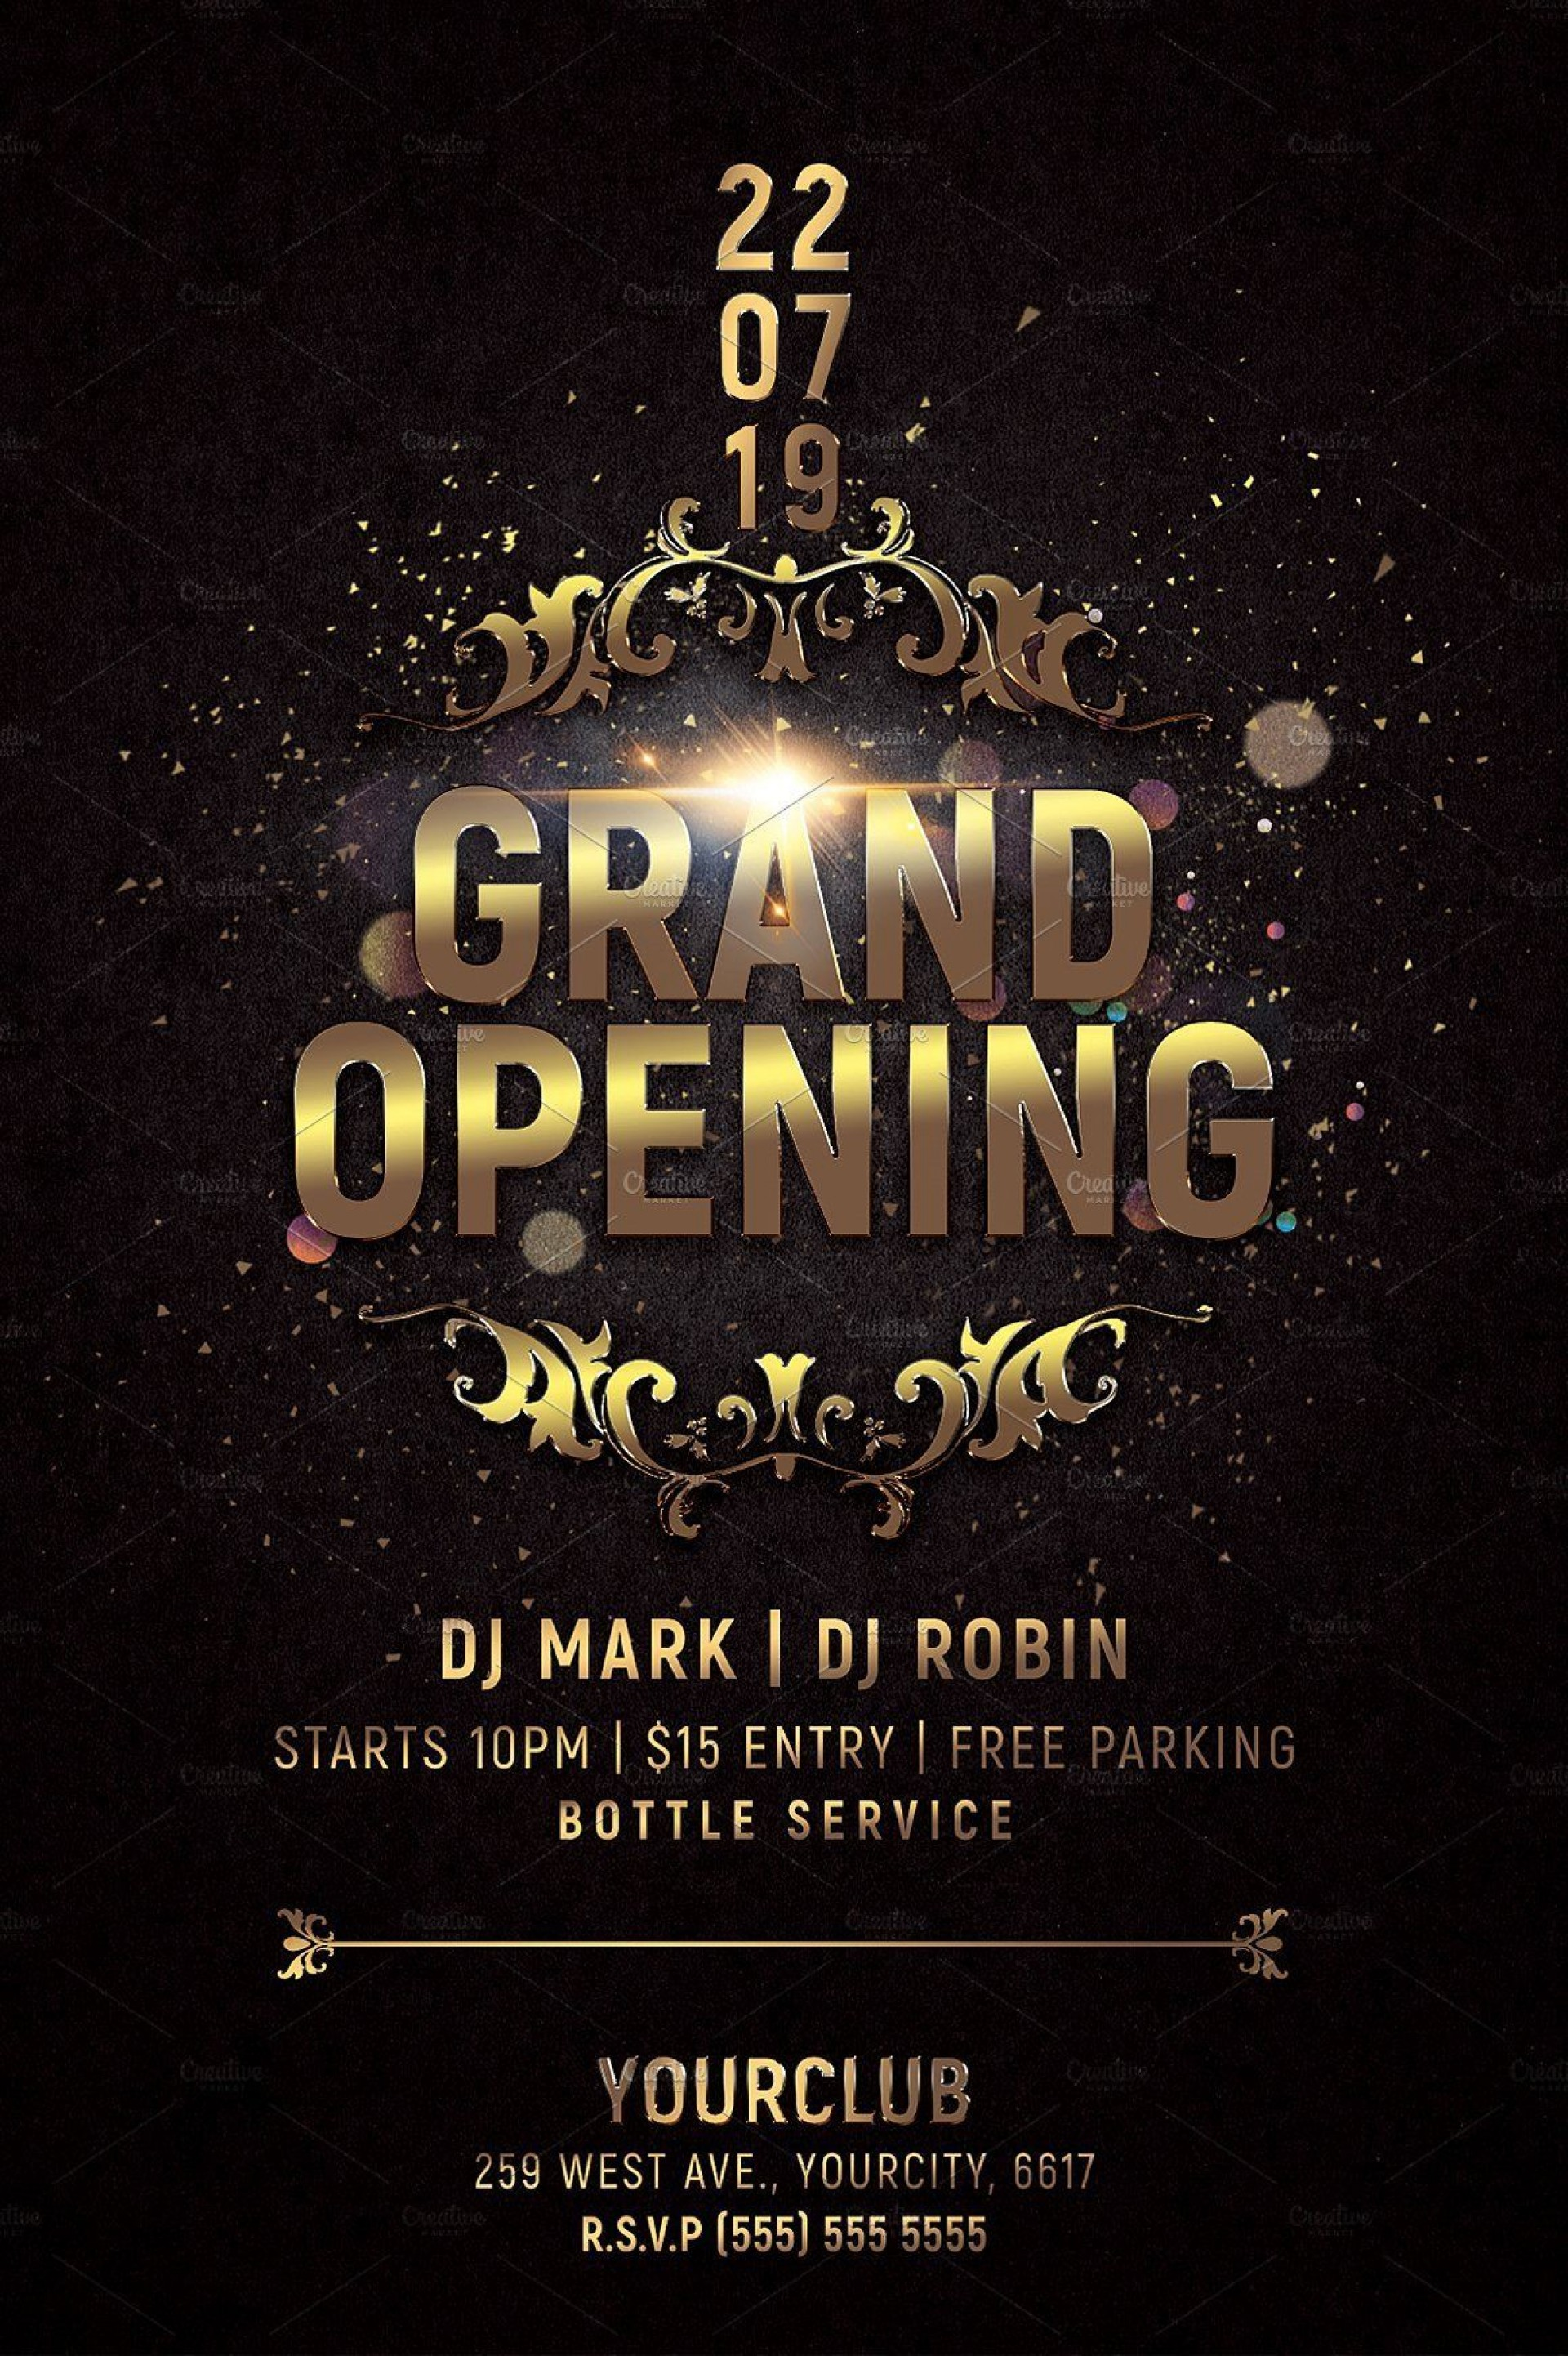 000 Awesome Grand Opening Flyer Template Free Image  Restaurant1920